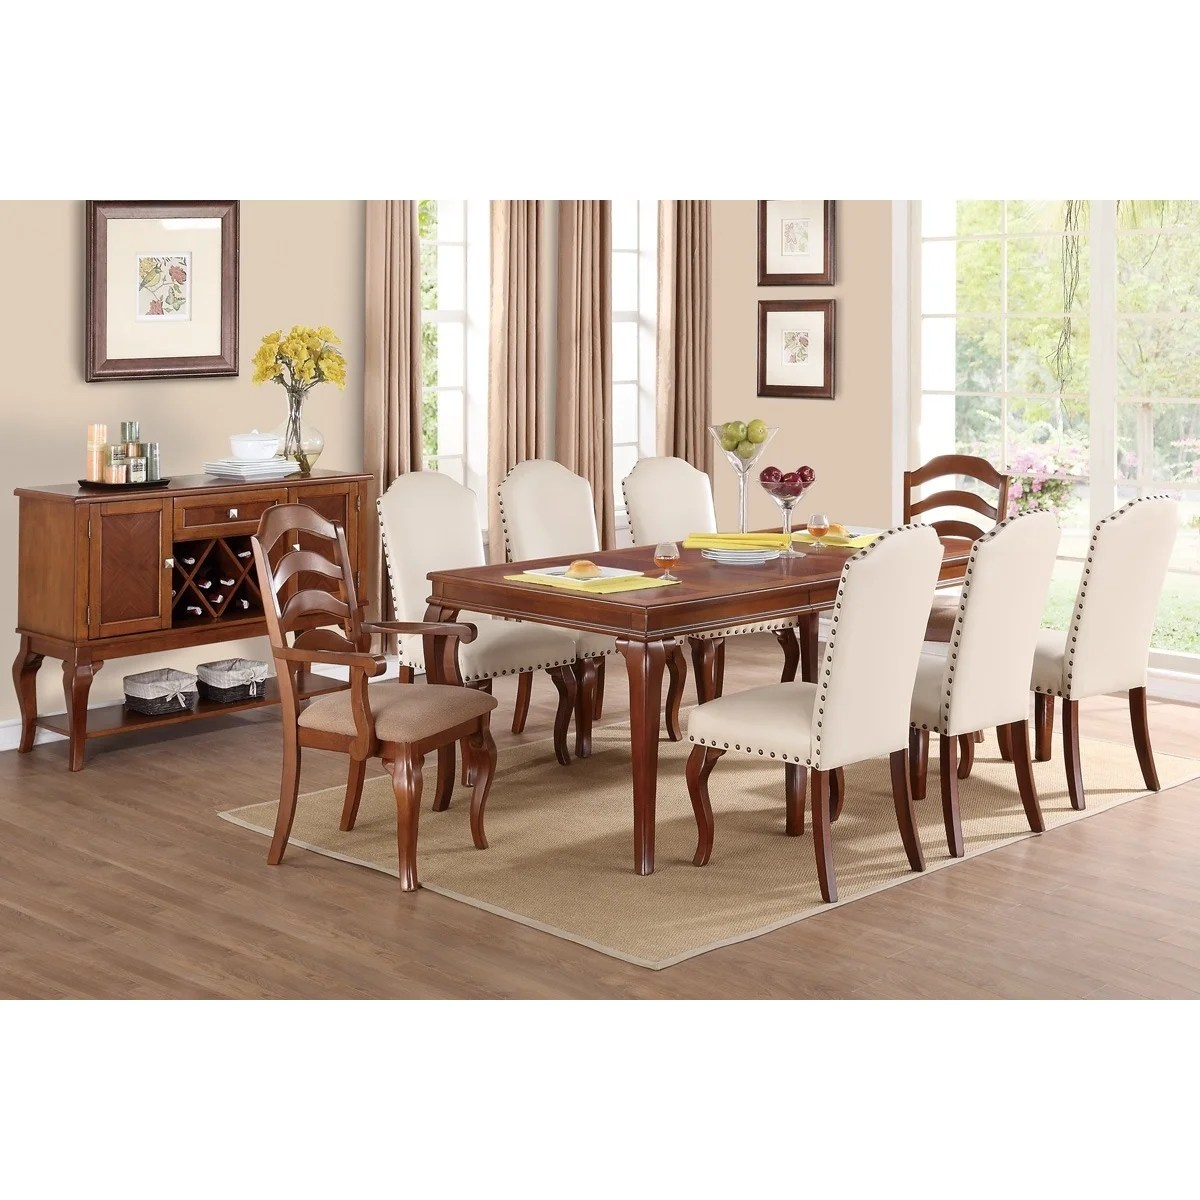 Western Chairs Western Nailhead Dining Chairs Set Of 6